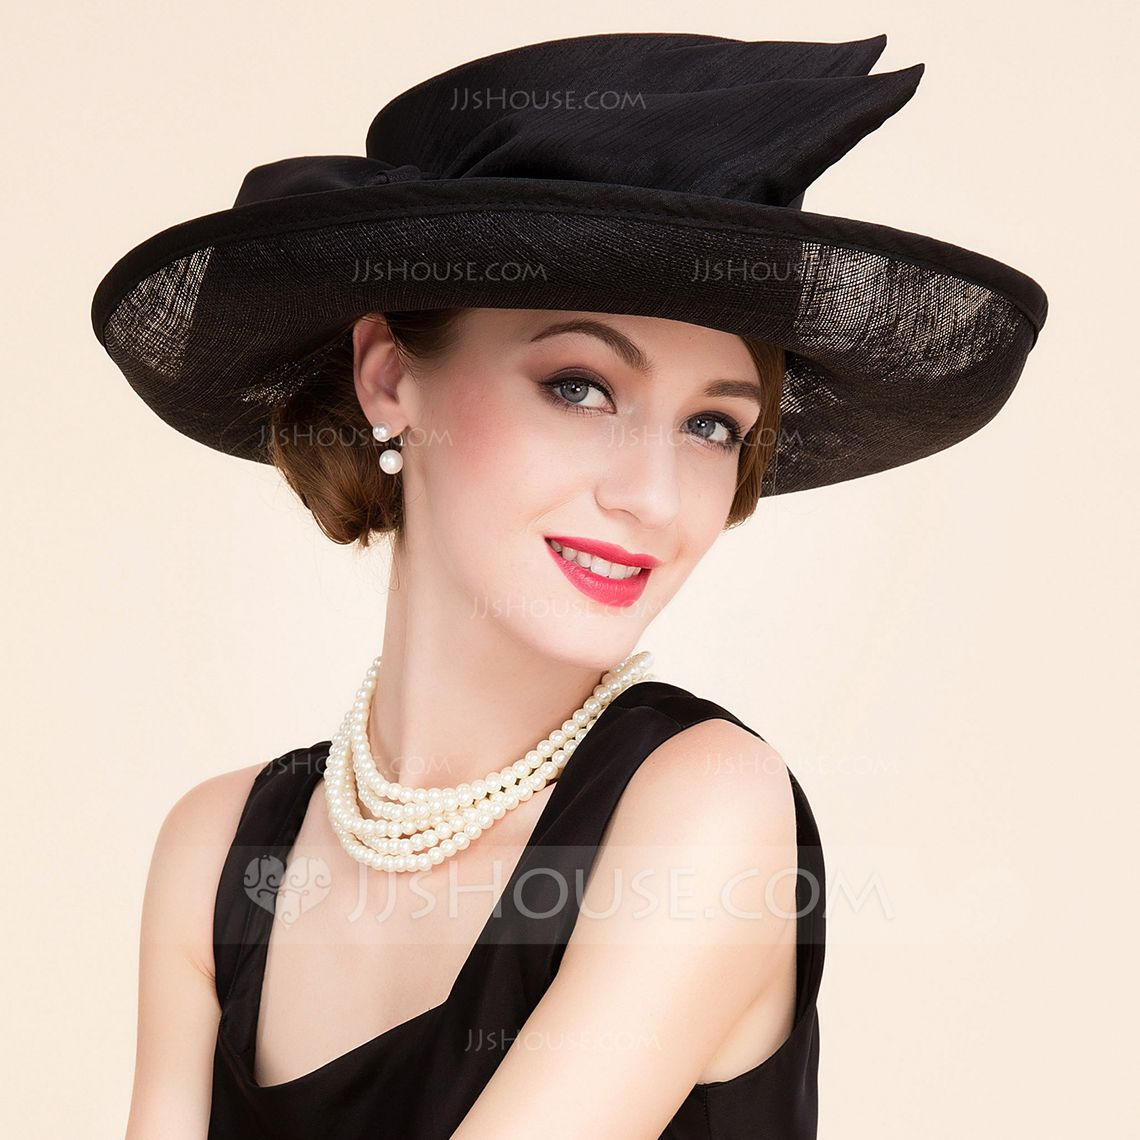 1e9c9cf0337  US  59.99  Ladies  Beautiful Cambric With Bowler Cloche Hat - JJsHouse